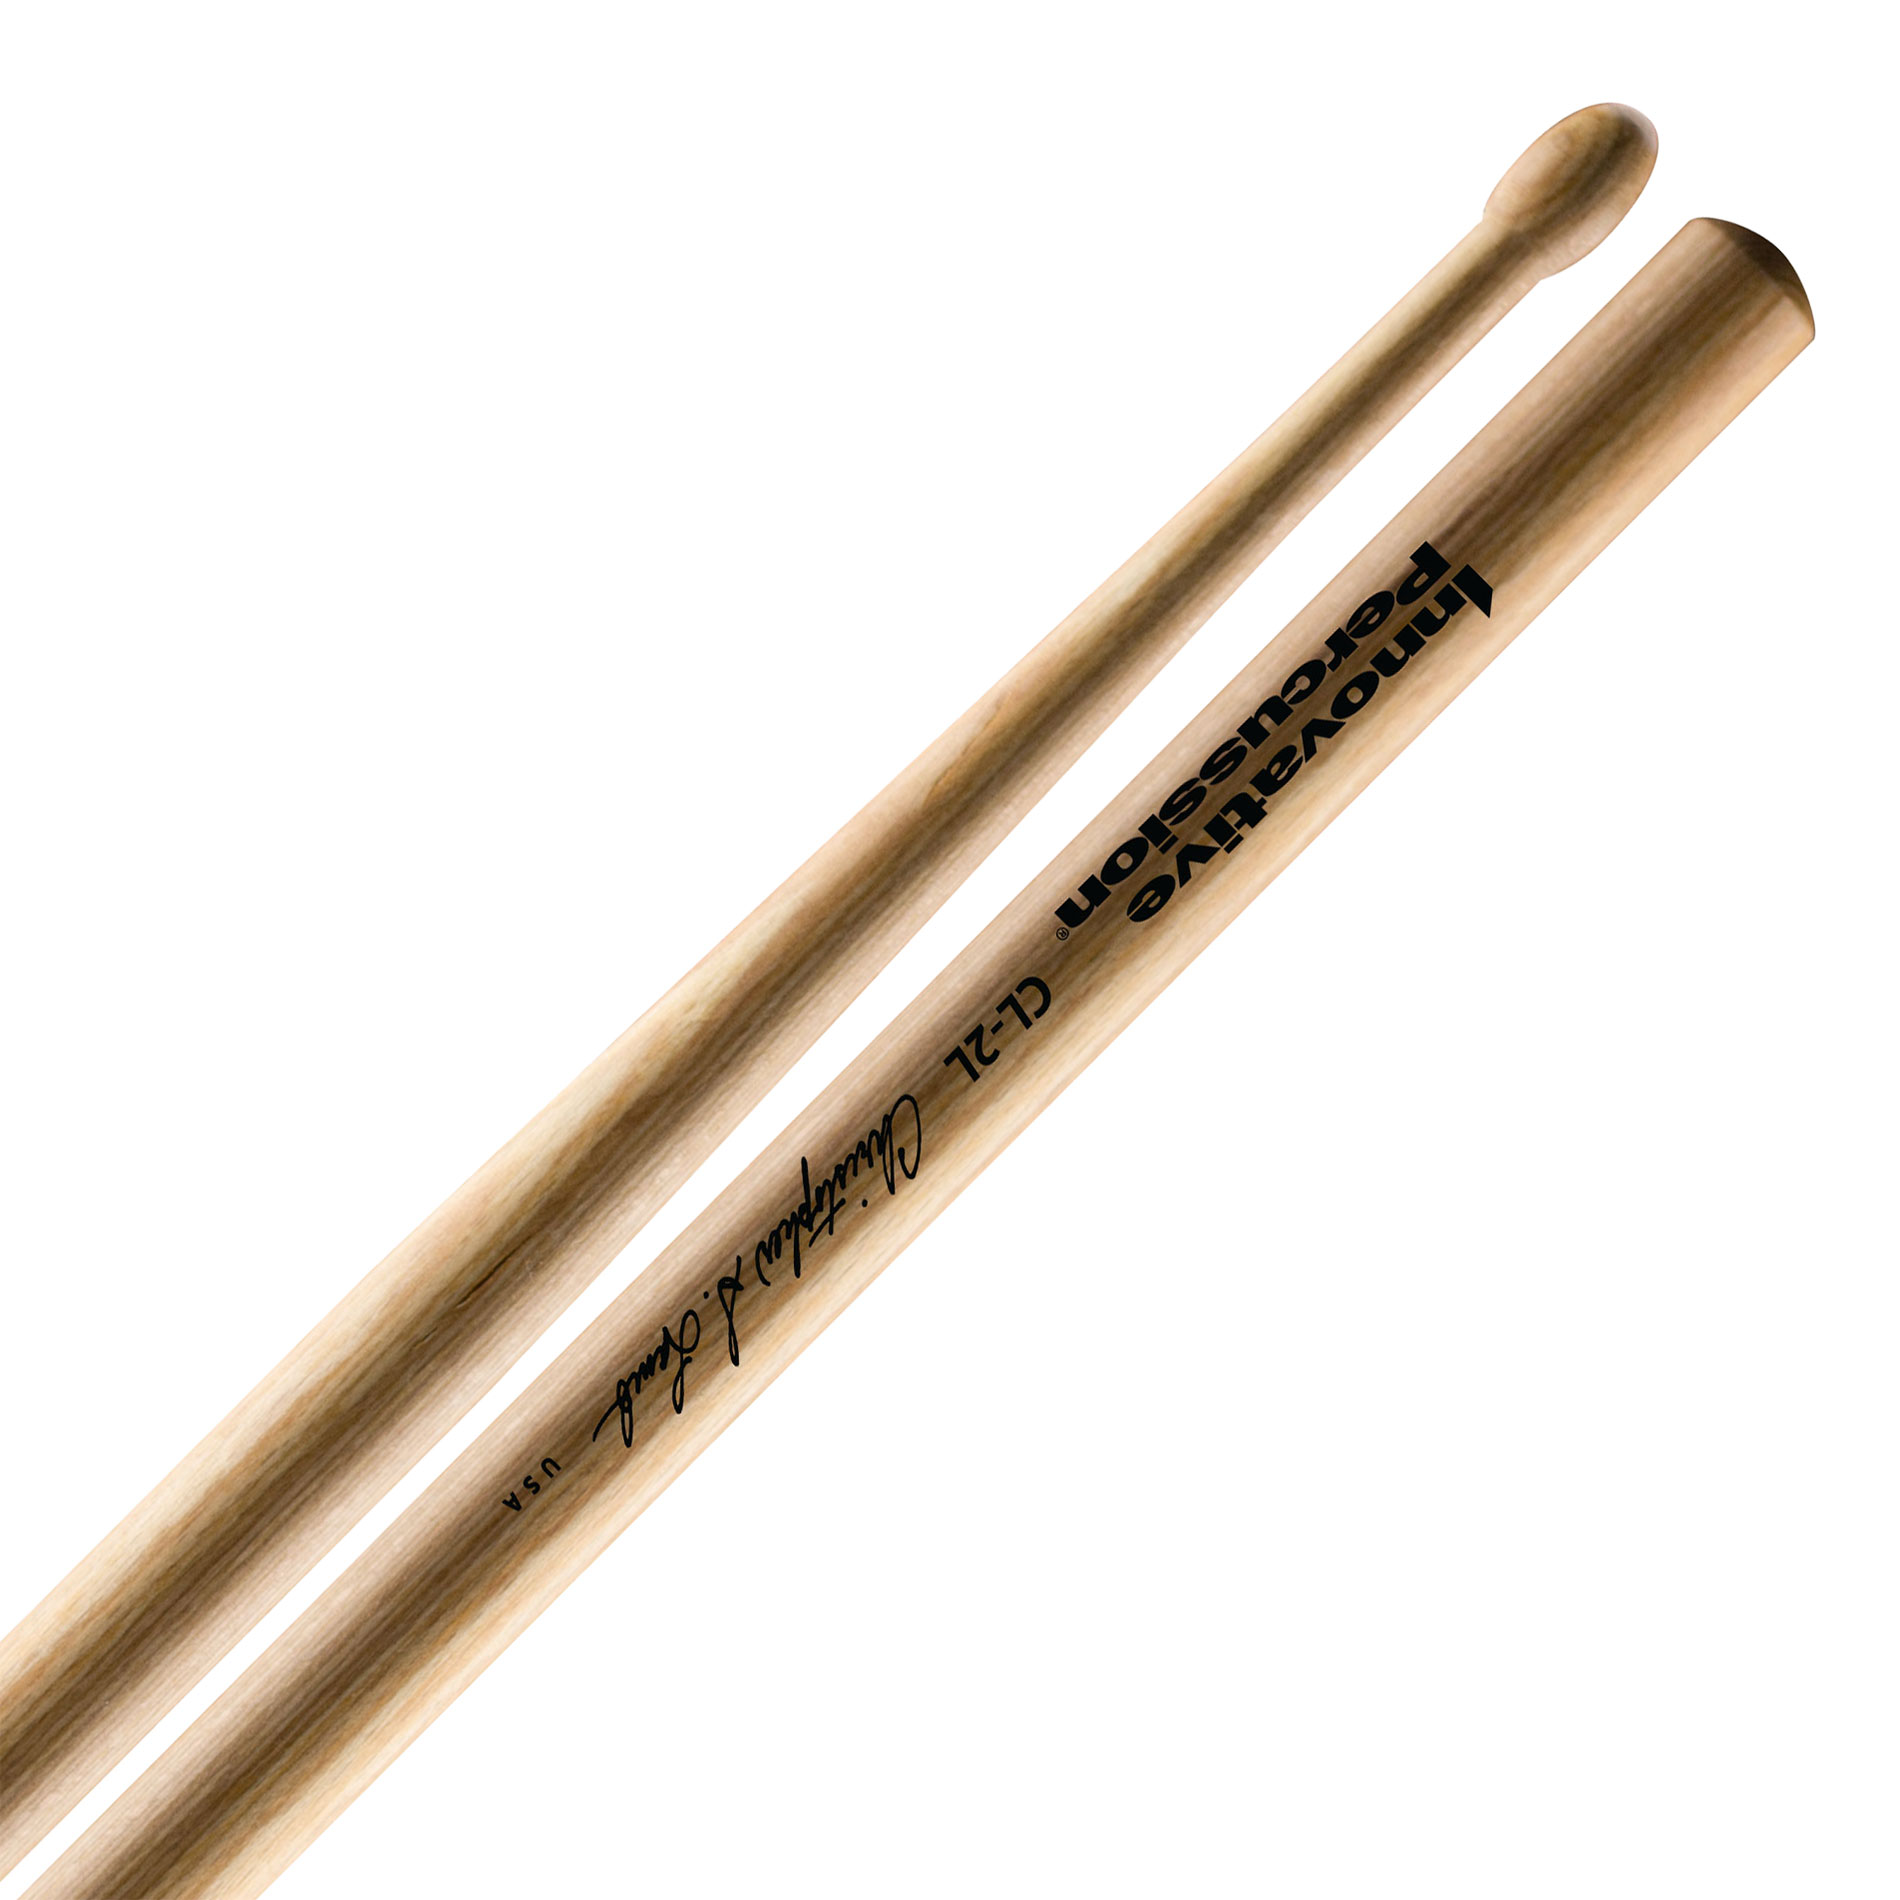 Innovative Percussion Christopher Lamb #2 Laminate Beech Signature Concert Snare Sticks